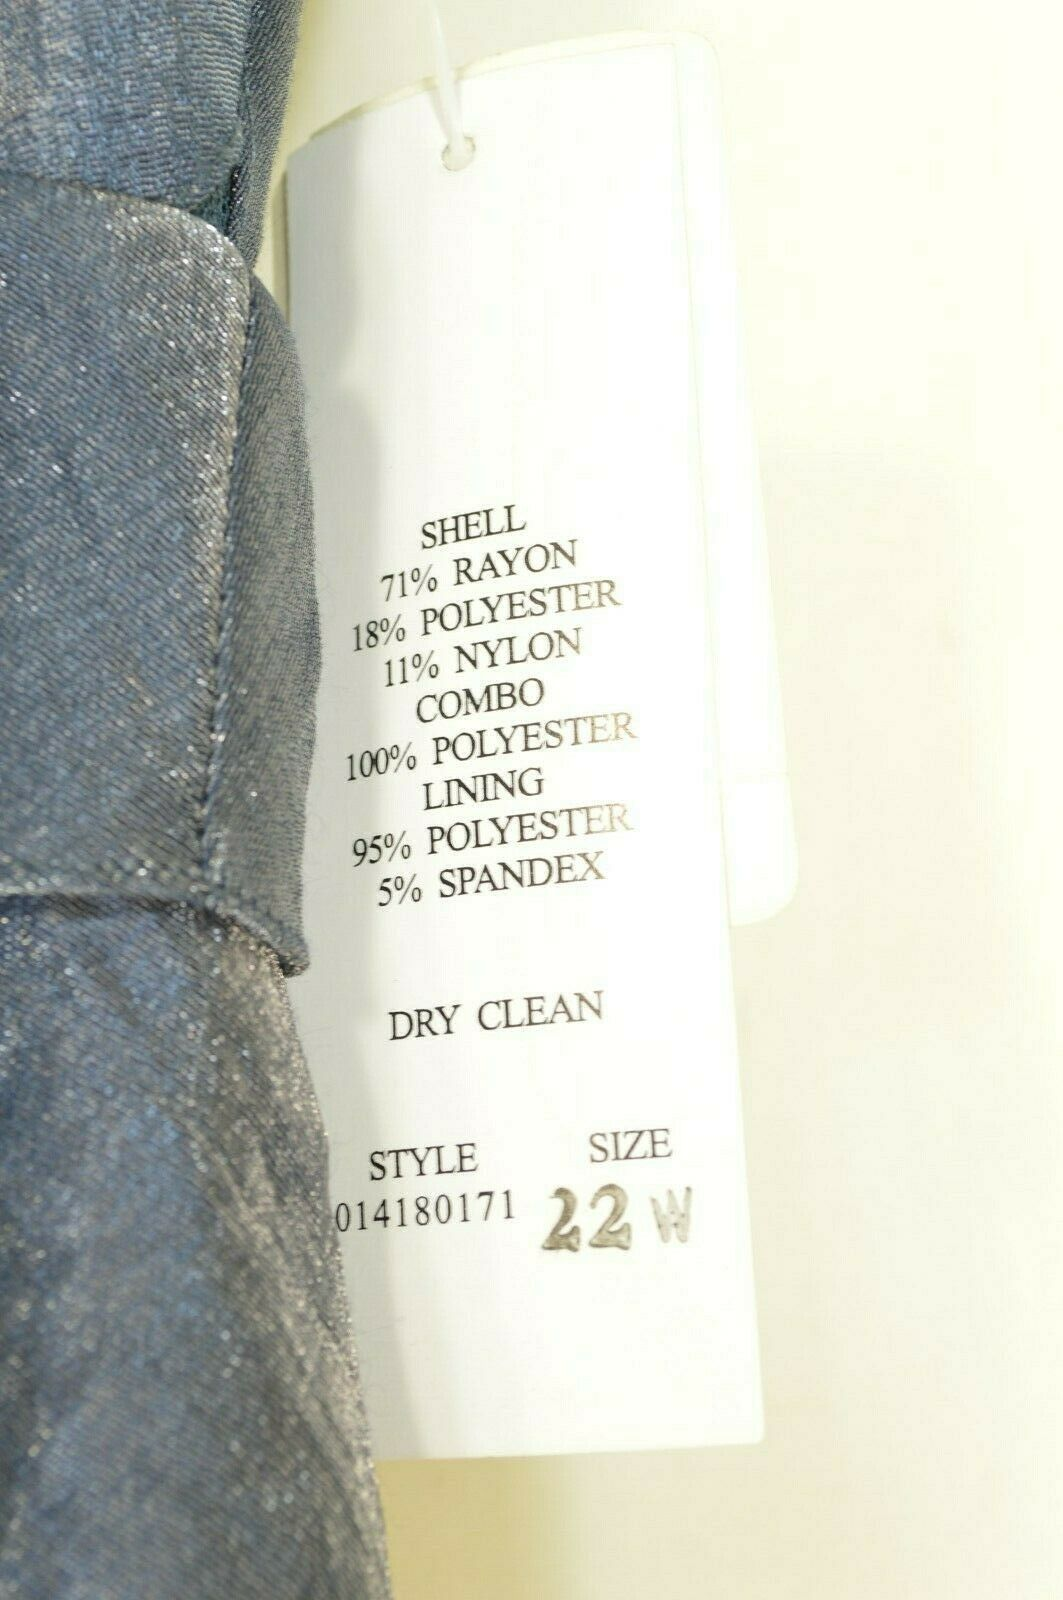 Adrianna Papell Woman dress 22W NWT gray/blue tiered ruffled flattering style